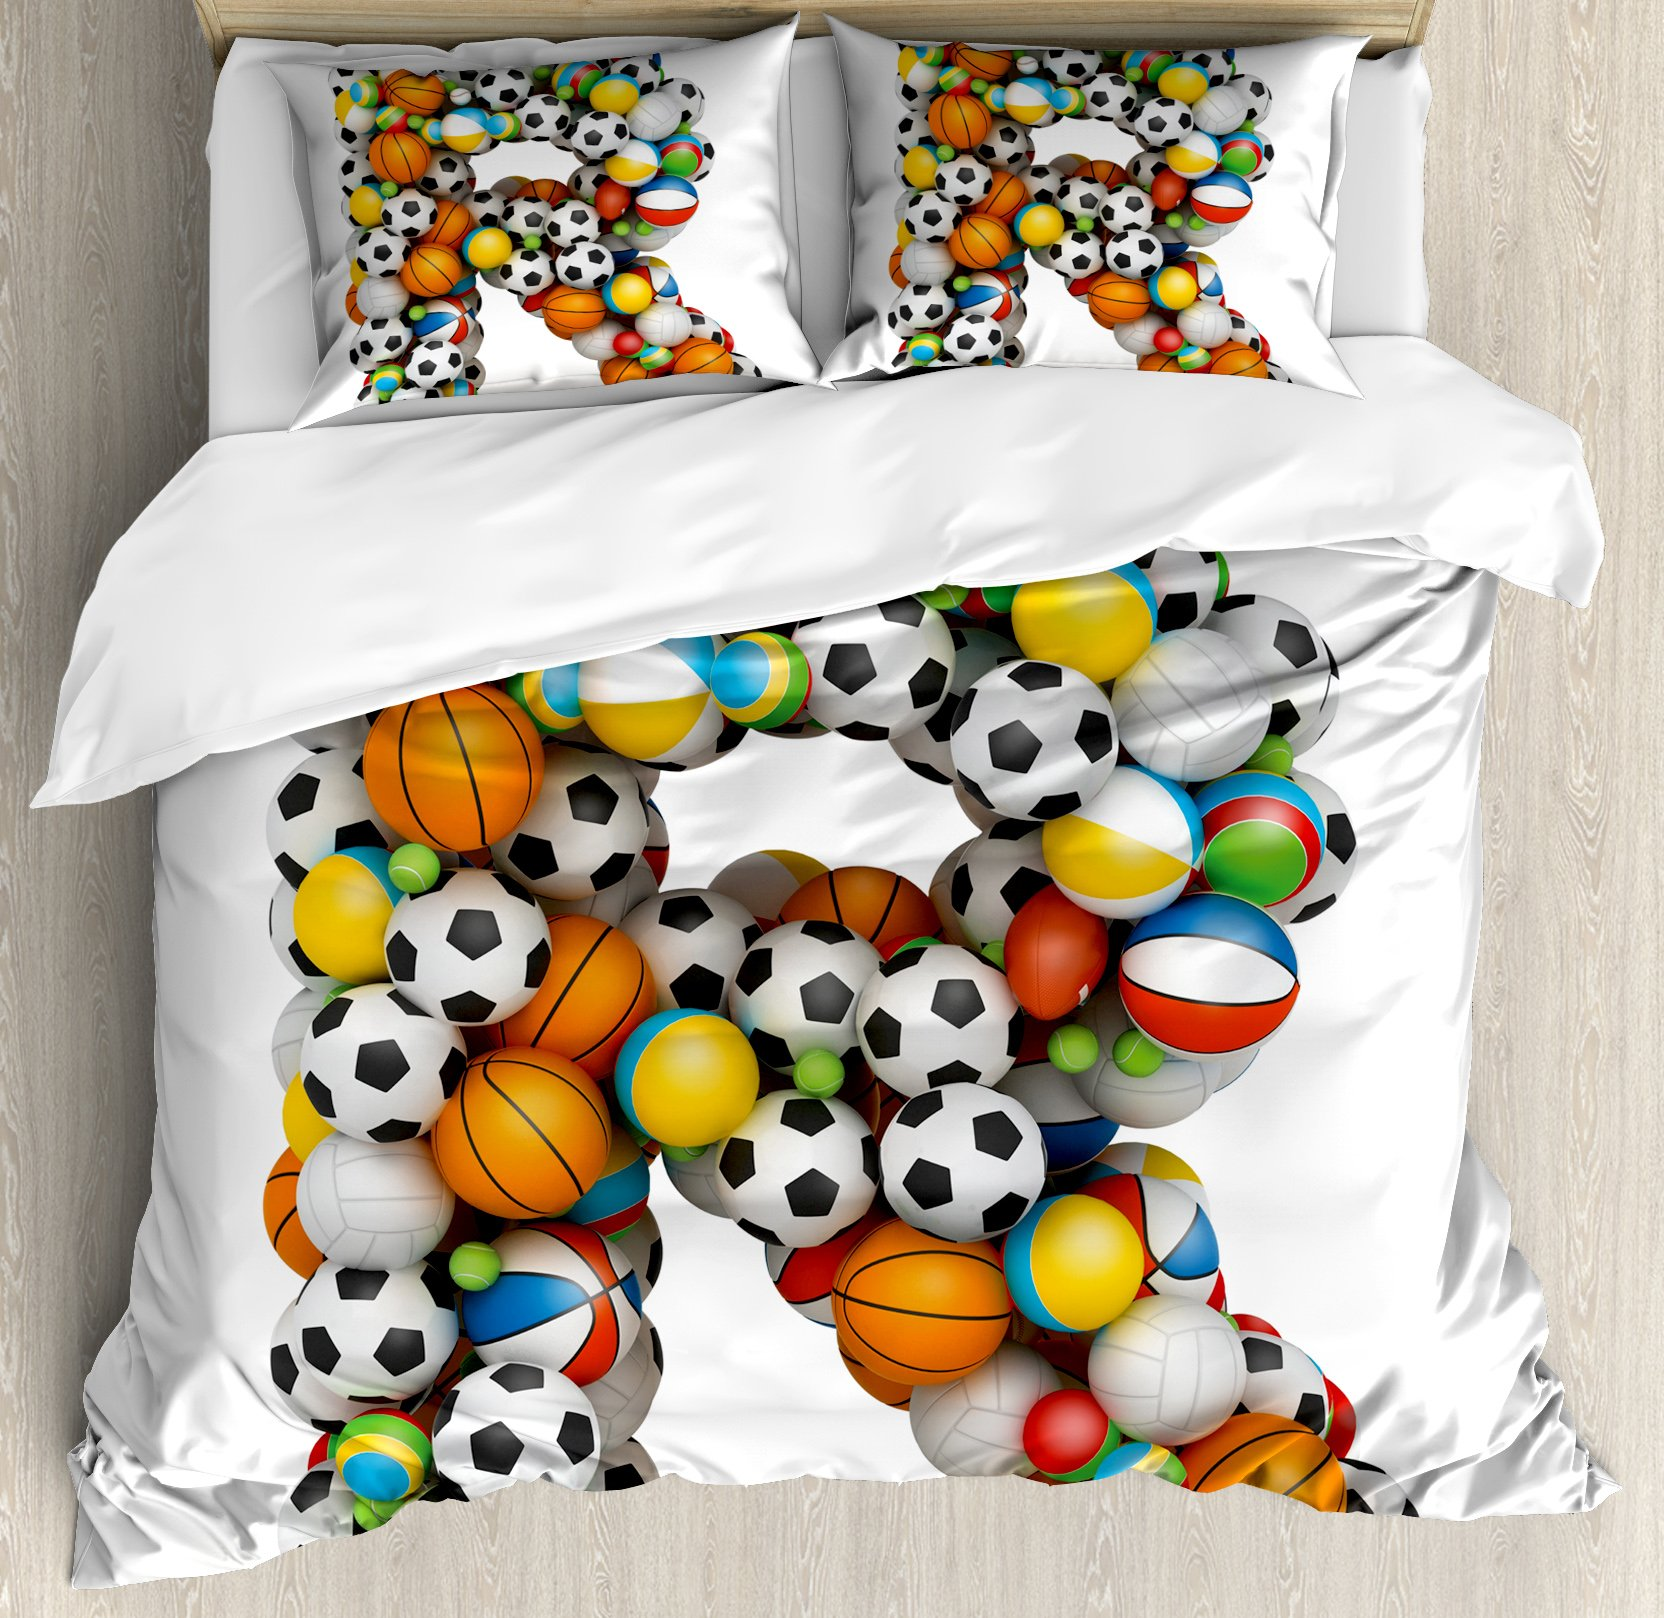 Letter R Duvet Cover Set Queen Size by Ambesonne, Realistic Looking Volleyball Basketball Soccer Balls Language of the Game Theme, Decorative 3 Piece Bedding Set with 2 Pillow Shams, Multicolor